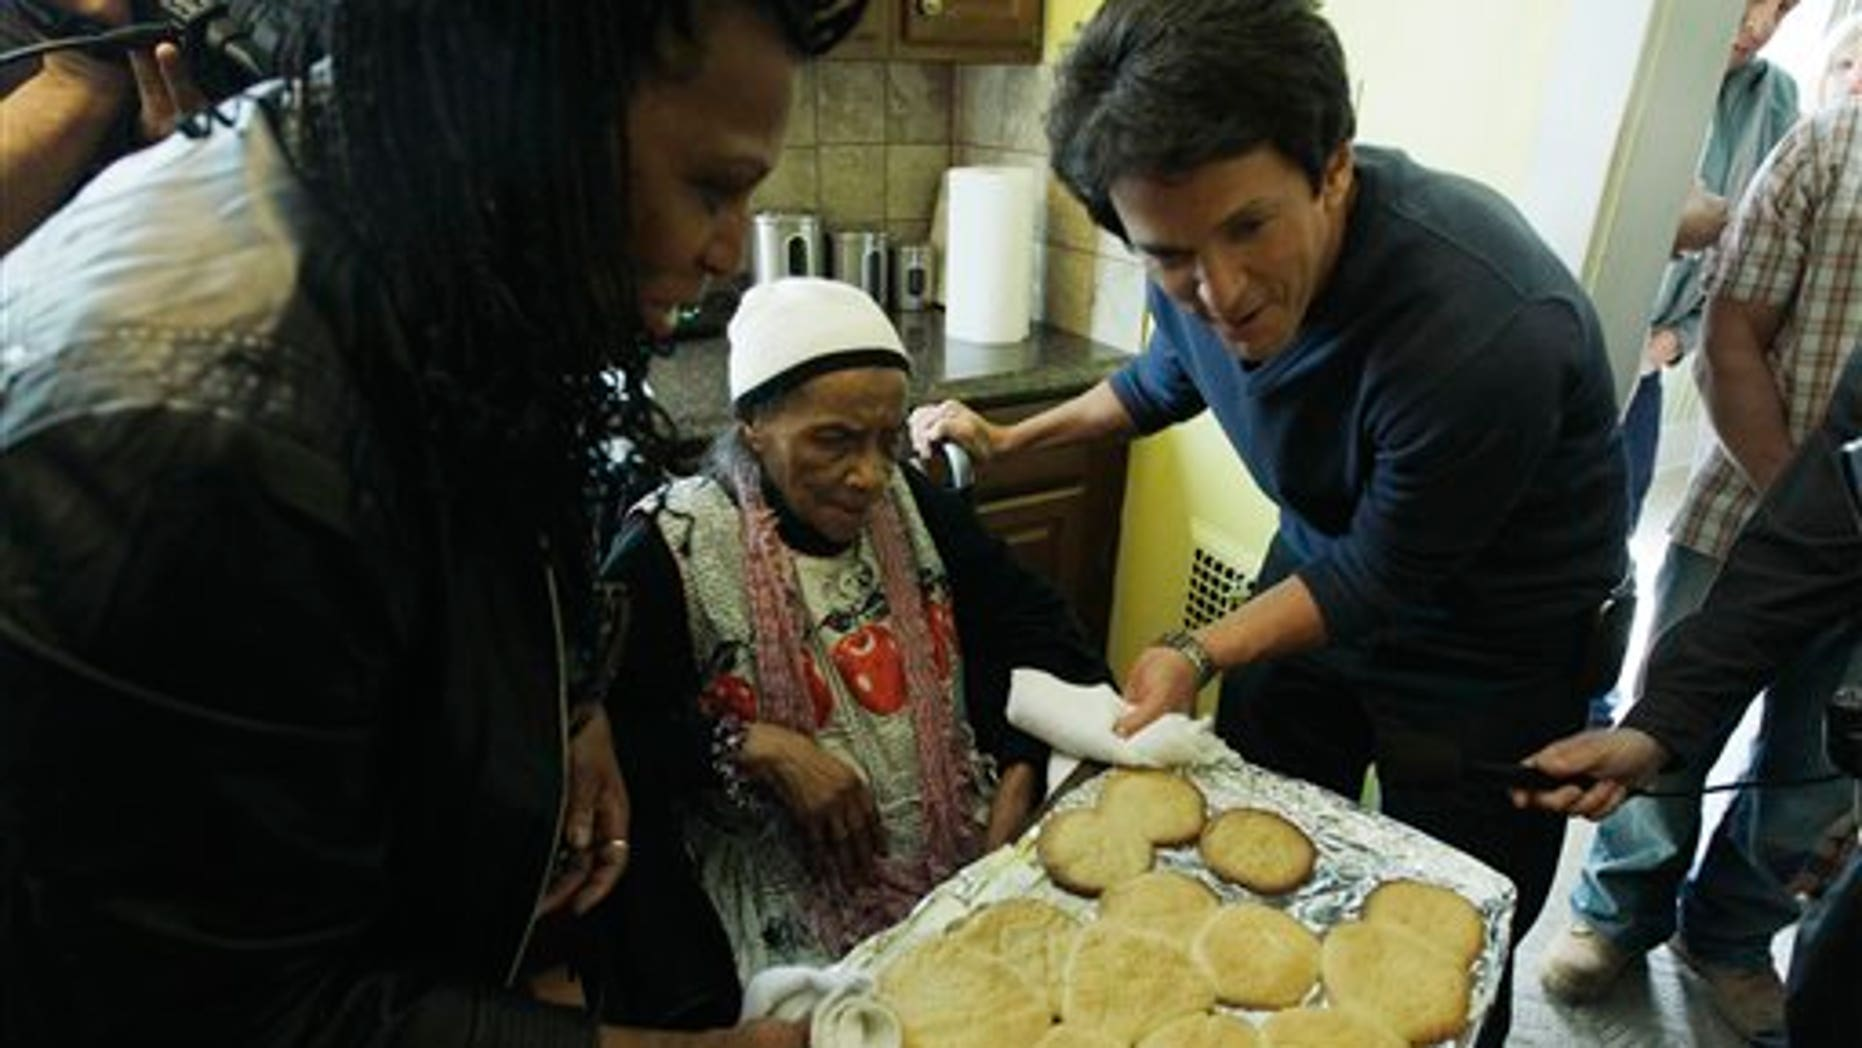 April 4: Detroit Free Press columnist Mitch Albom, right, helps Texana Hollis pull cookies from the oven in her home in Detroit.